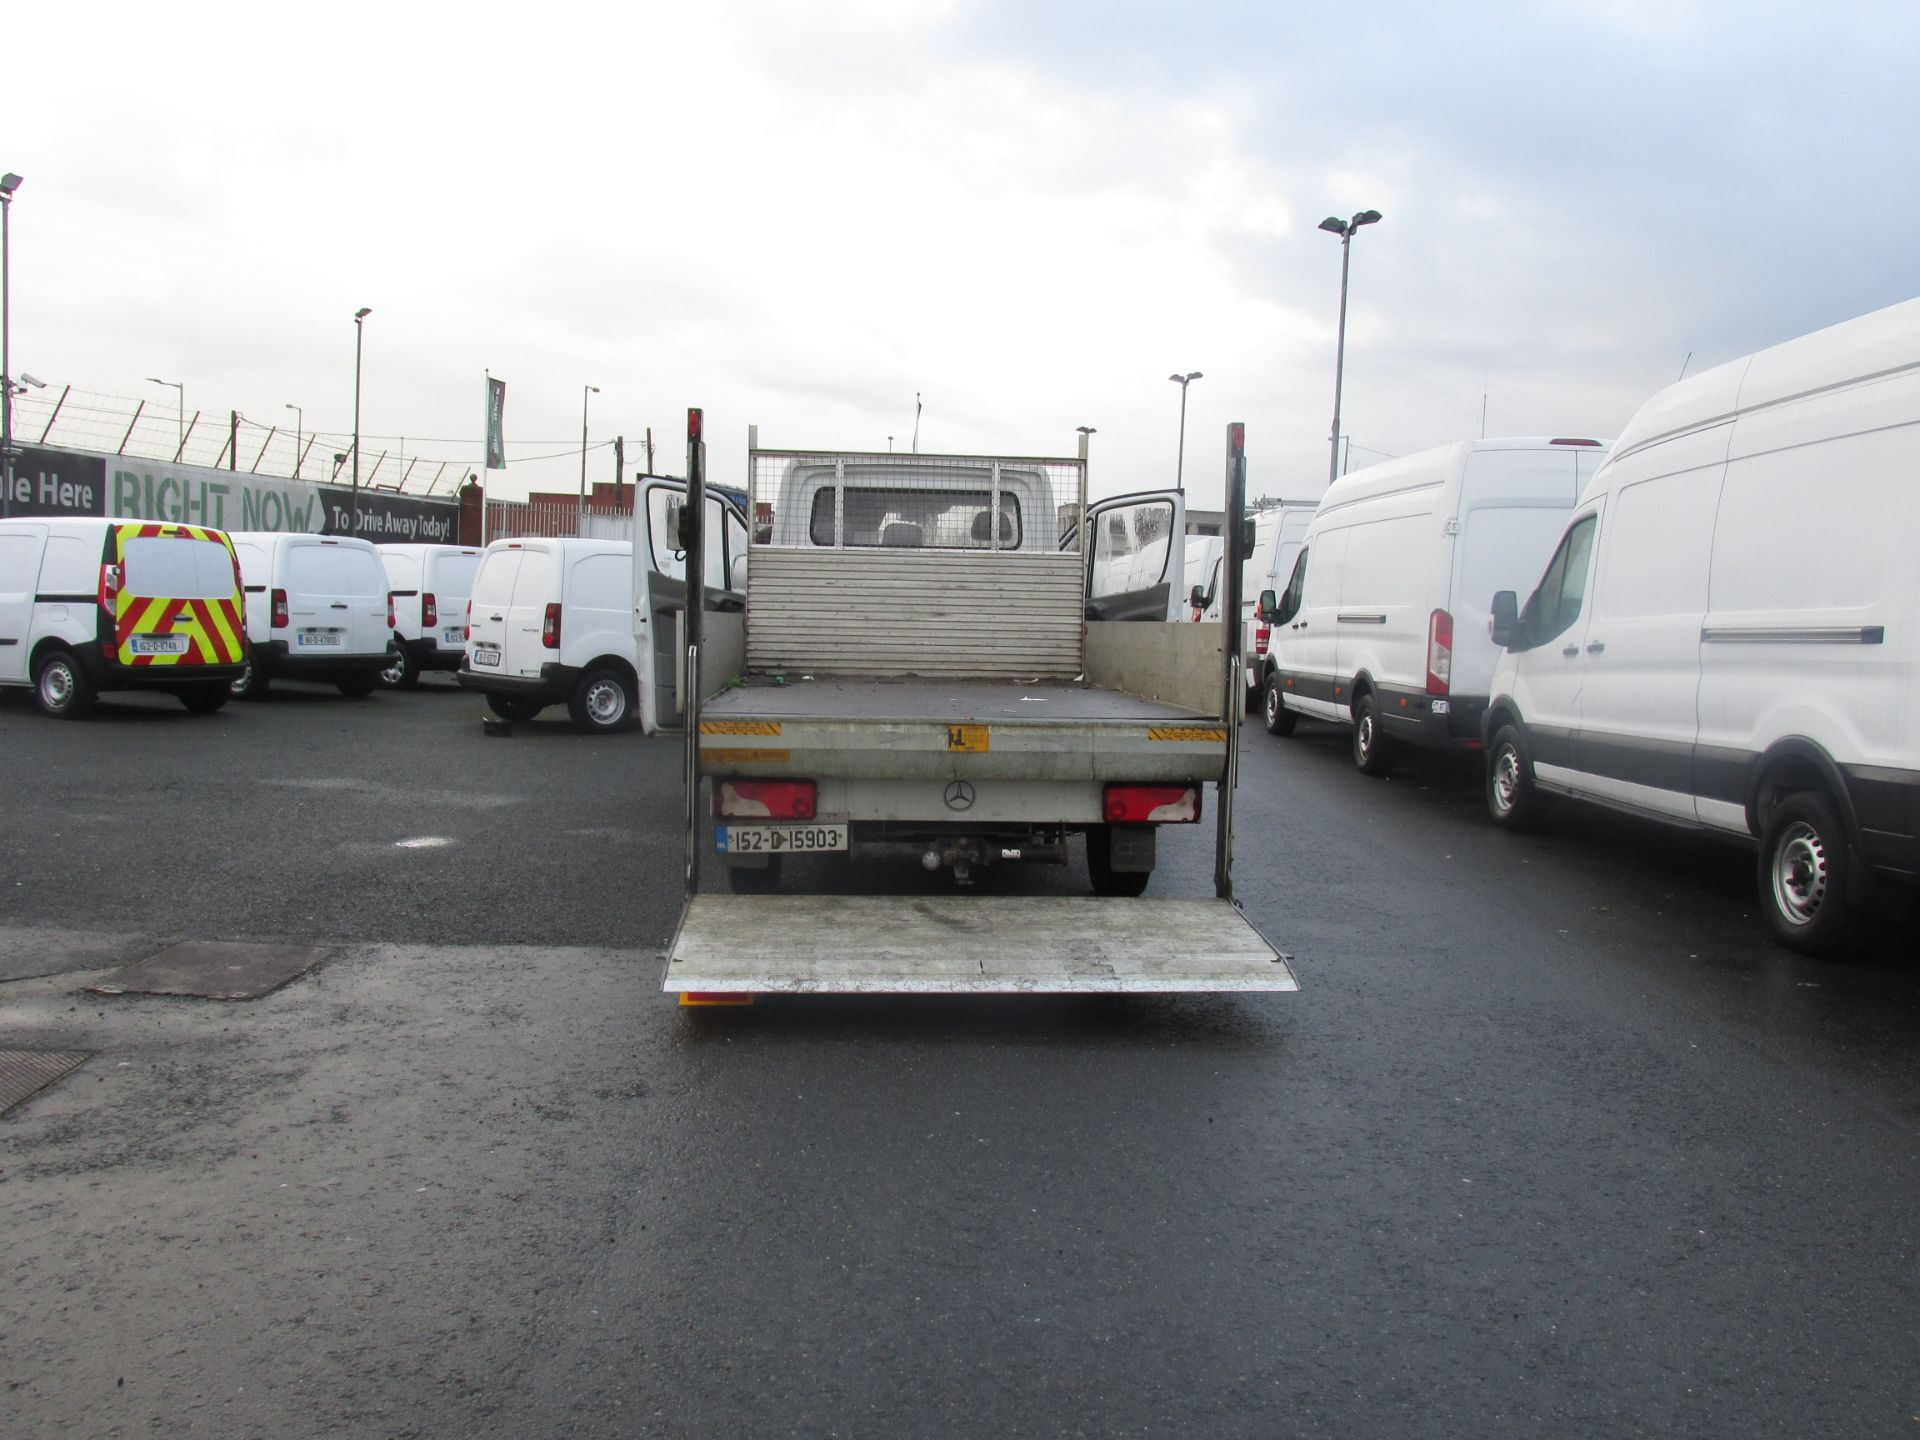 2015 Mercedes Sprinter 313 CDI - SPRINTER -  DROPSIDE  WITH  TAILLIFT  - (152D15903) Image 8